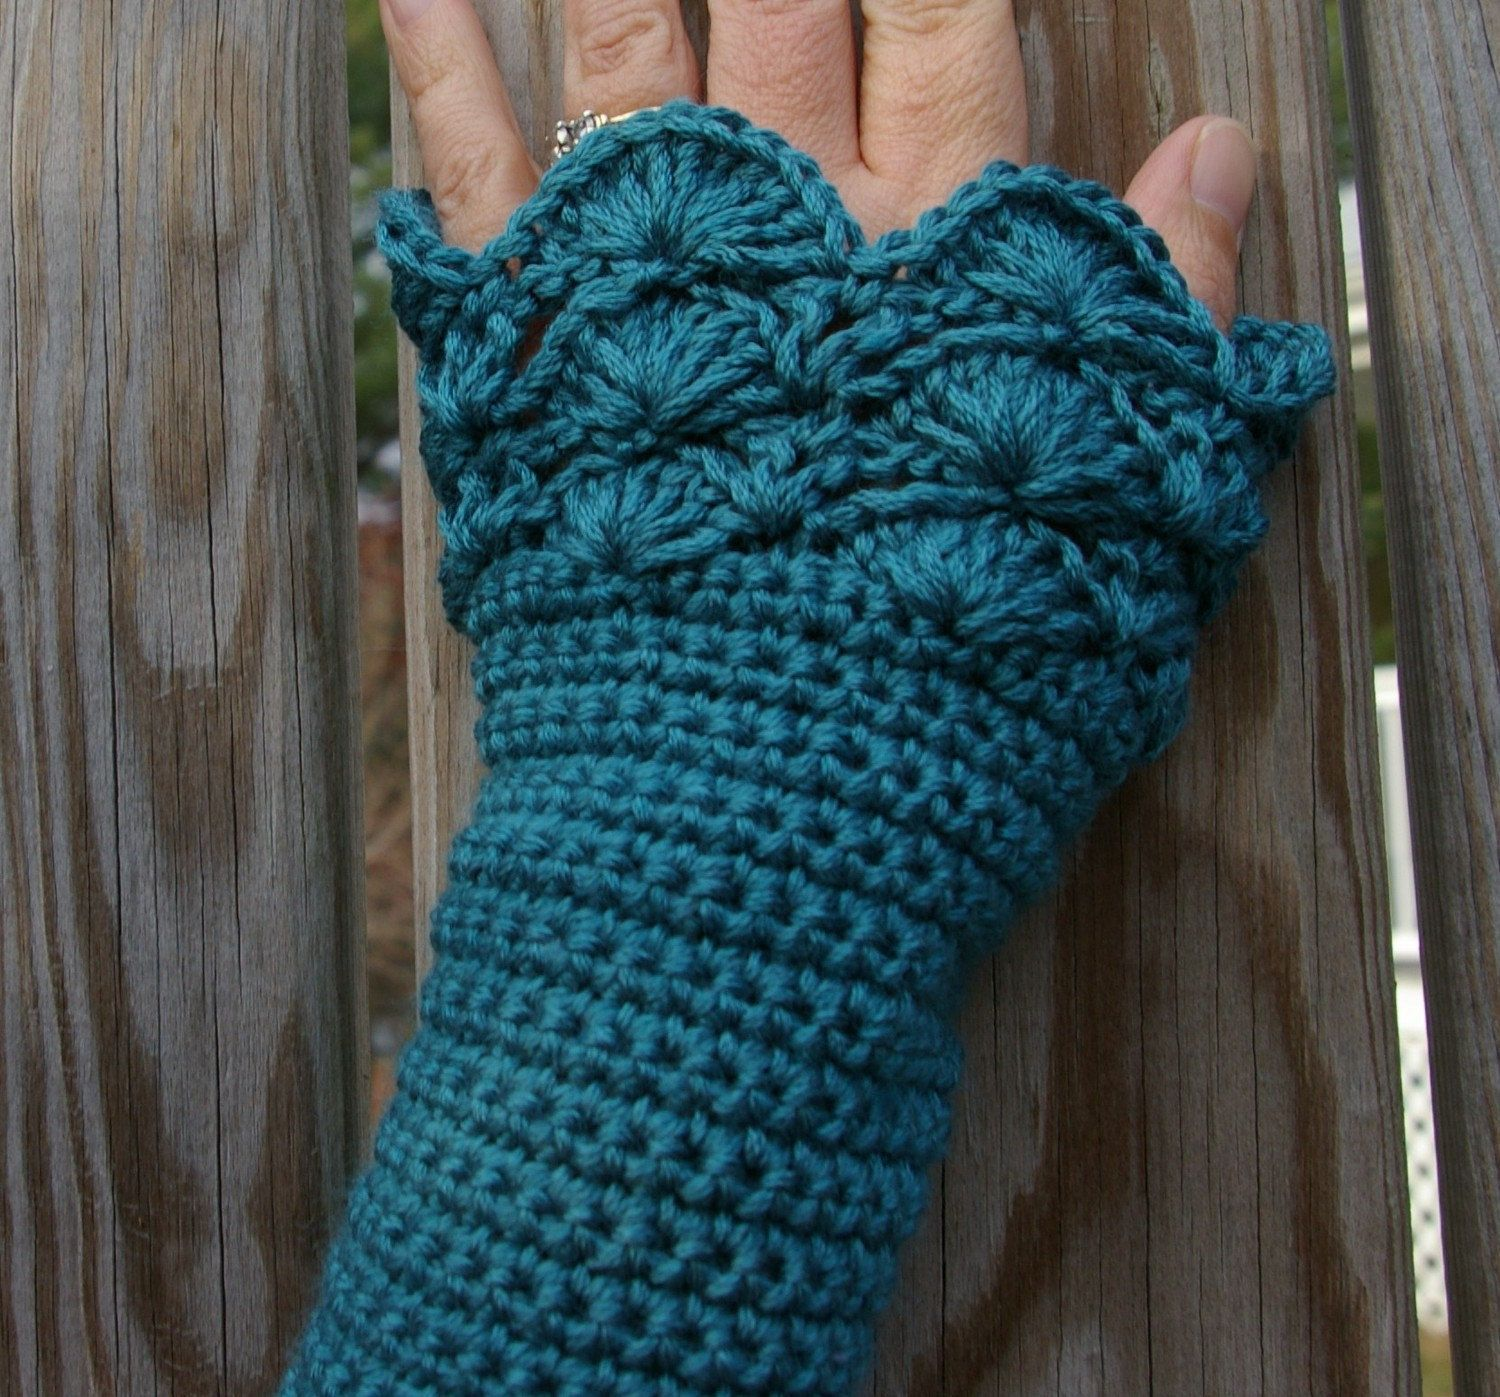 Crochet arm warmers fingerless gloves in teal with peacock pattern crochet arm warmers fingerless gloves in teal with peacock pattern crochet bankloansurffo Choice Image